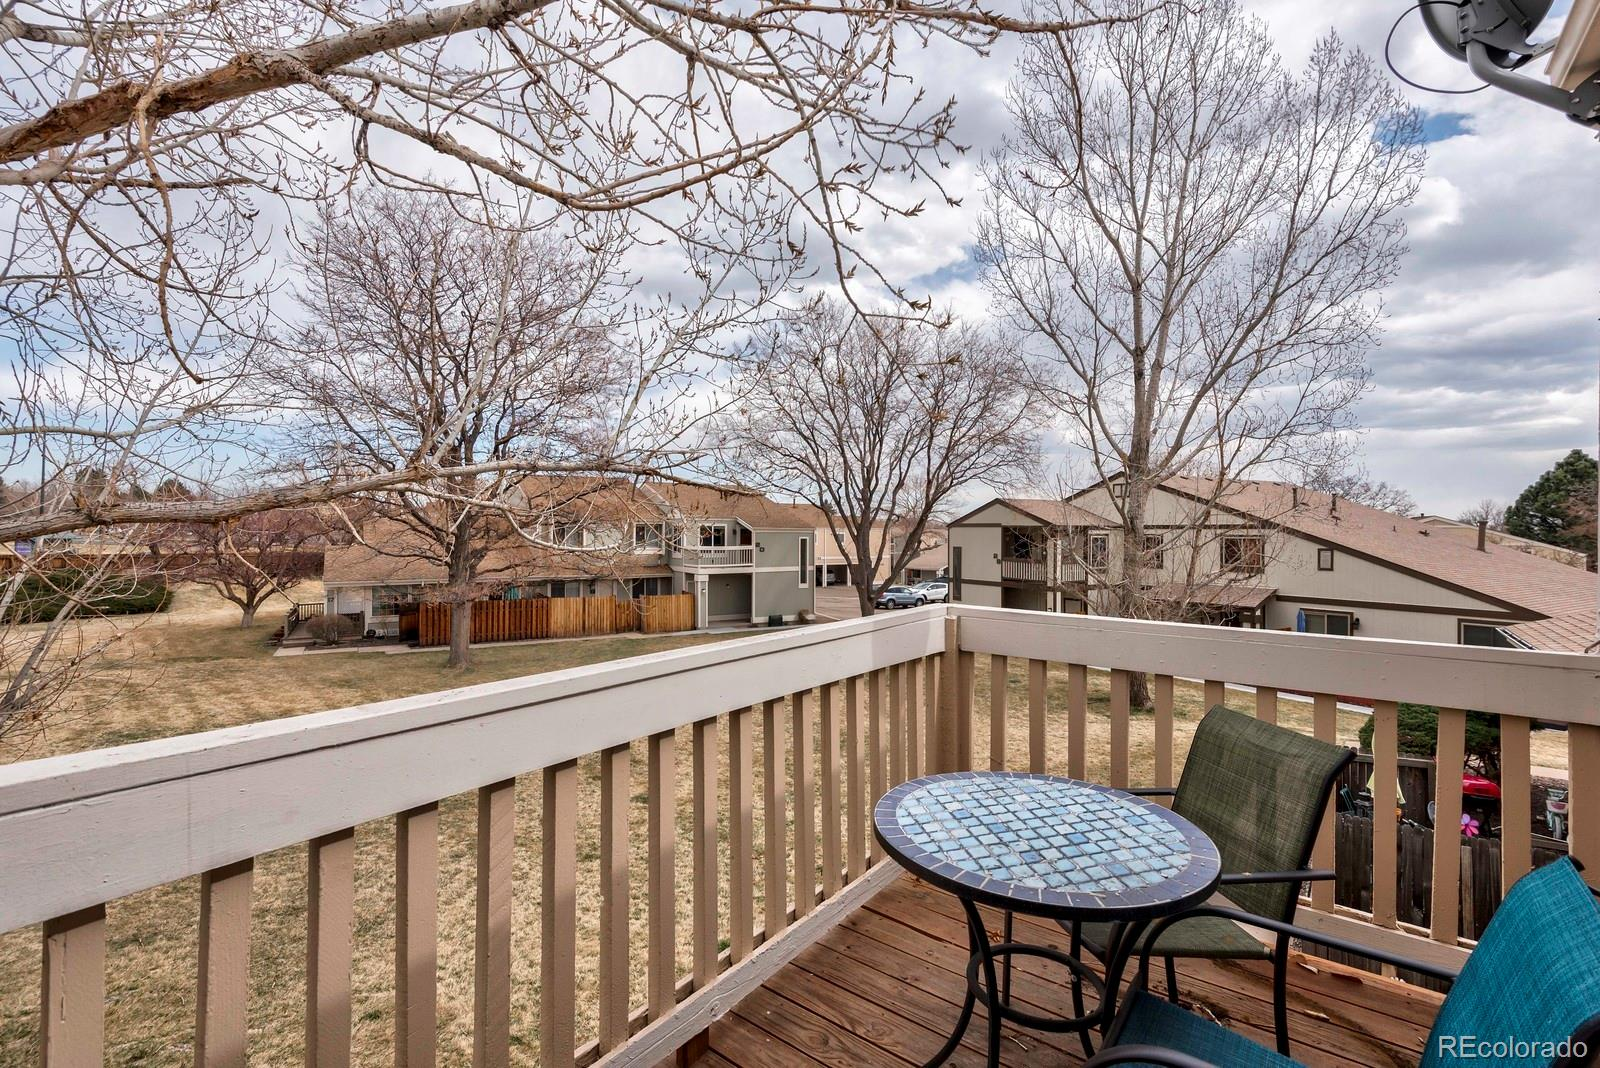 MLS# 2804784 - 16 - 8792 Chase Drive #16, Arvada, CO 80003